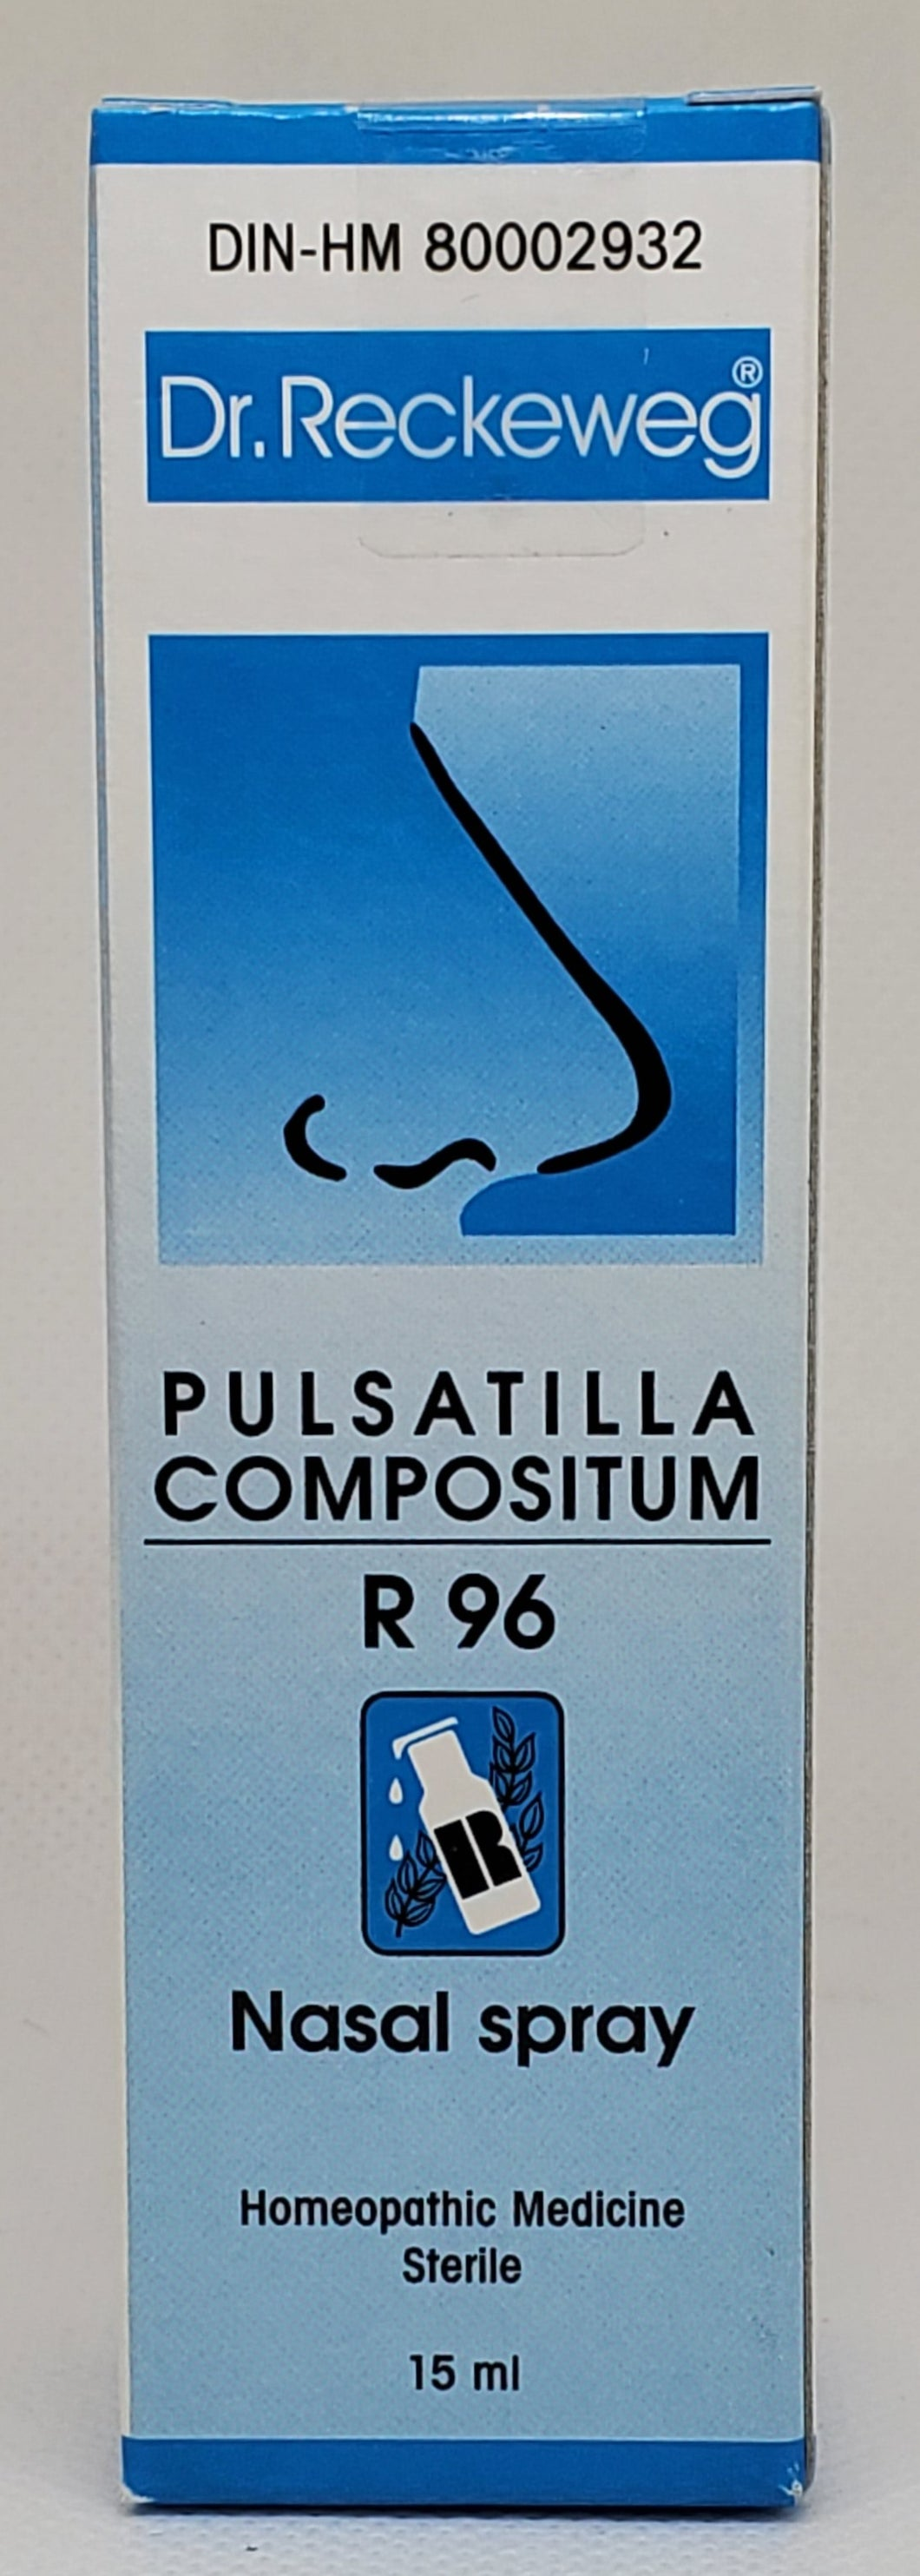 Pulsatilla compositum Nasal spray - Dr. Kohli's Herbal Products